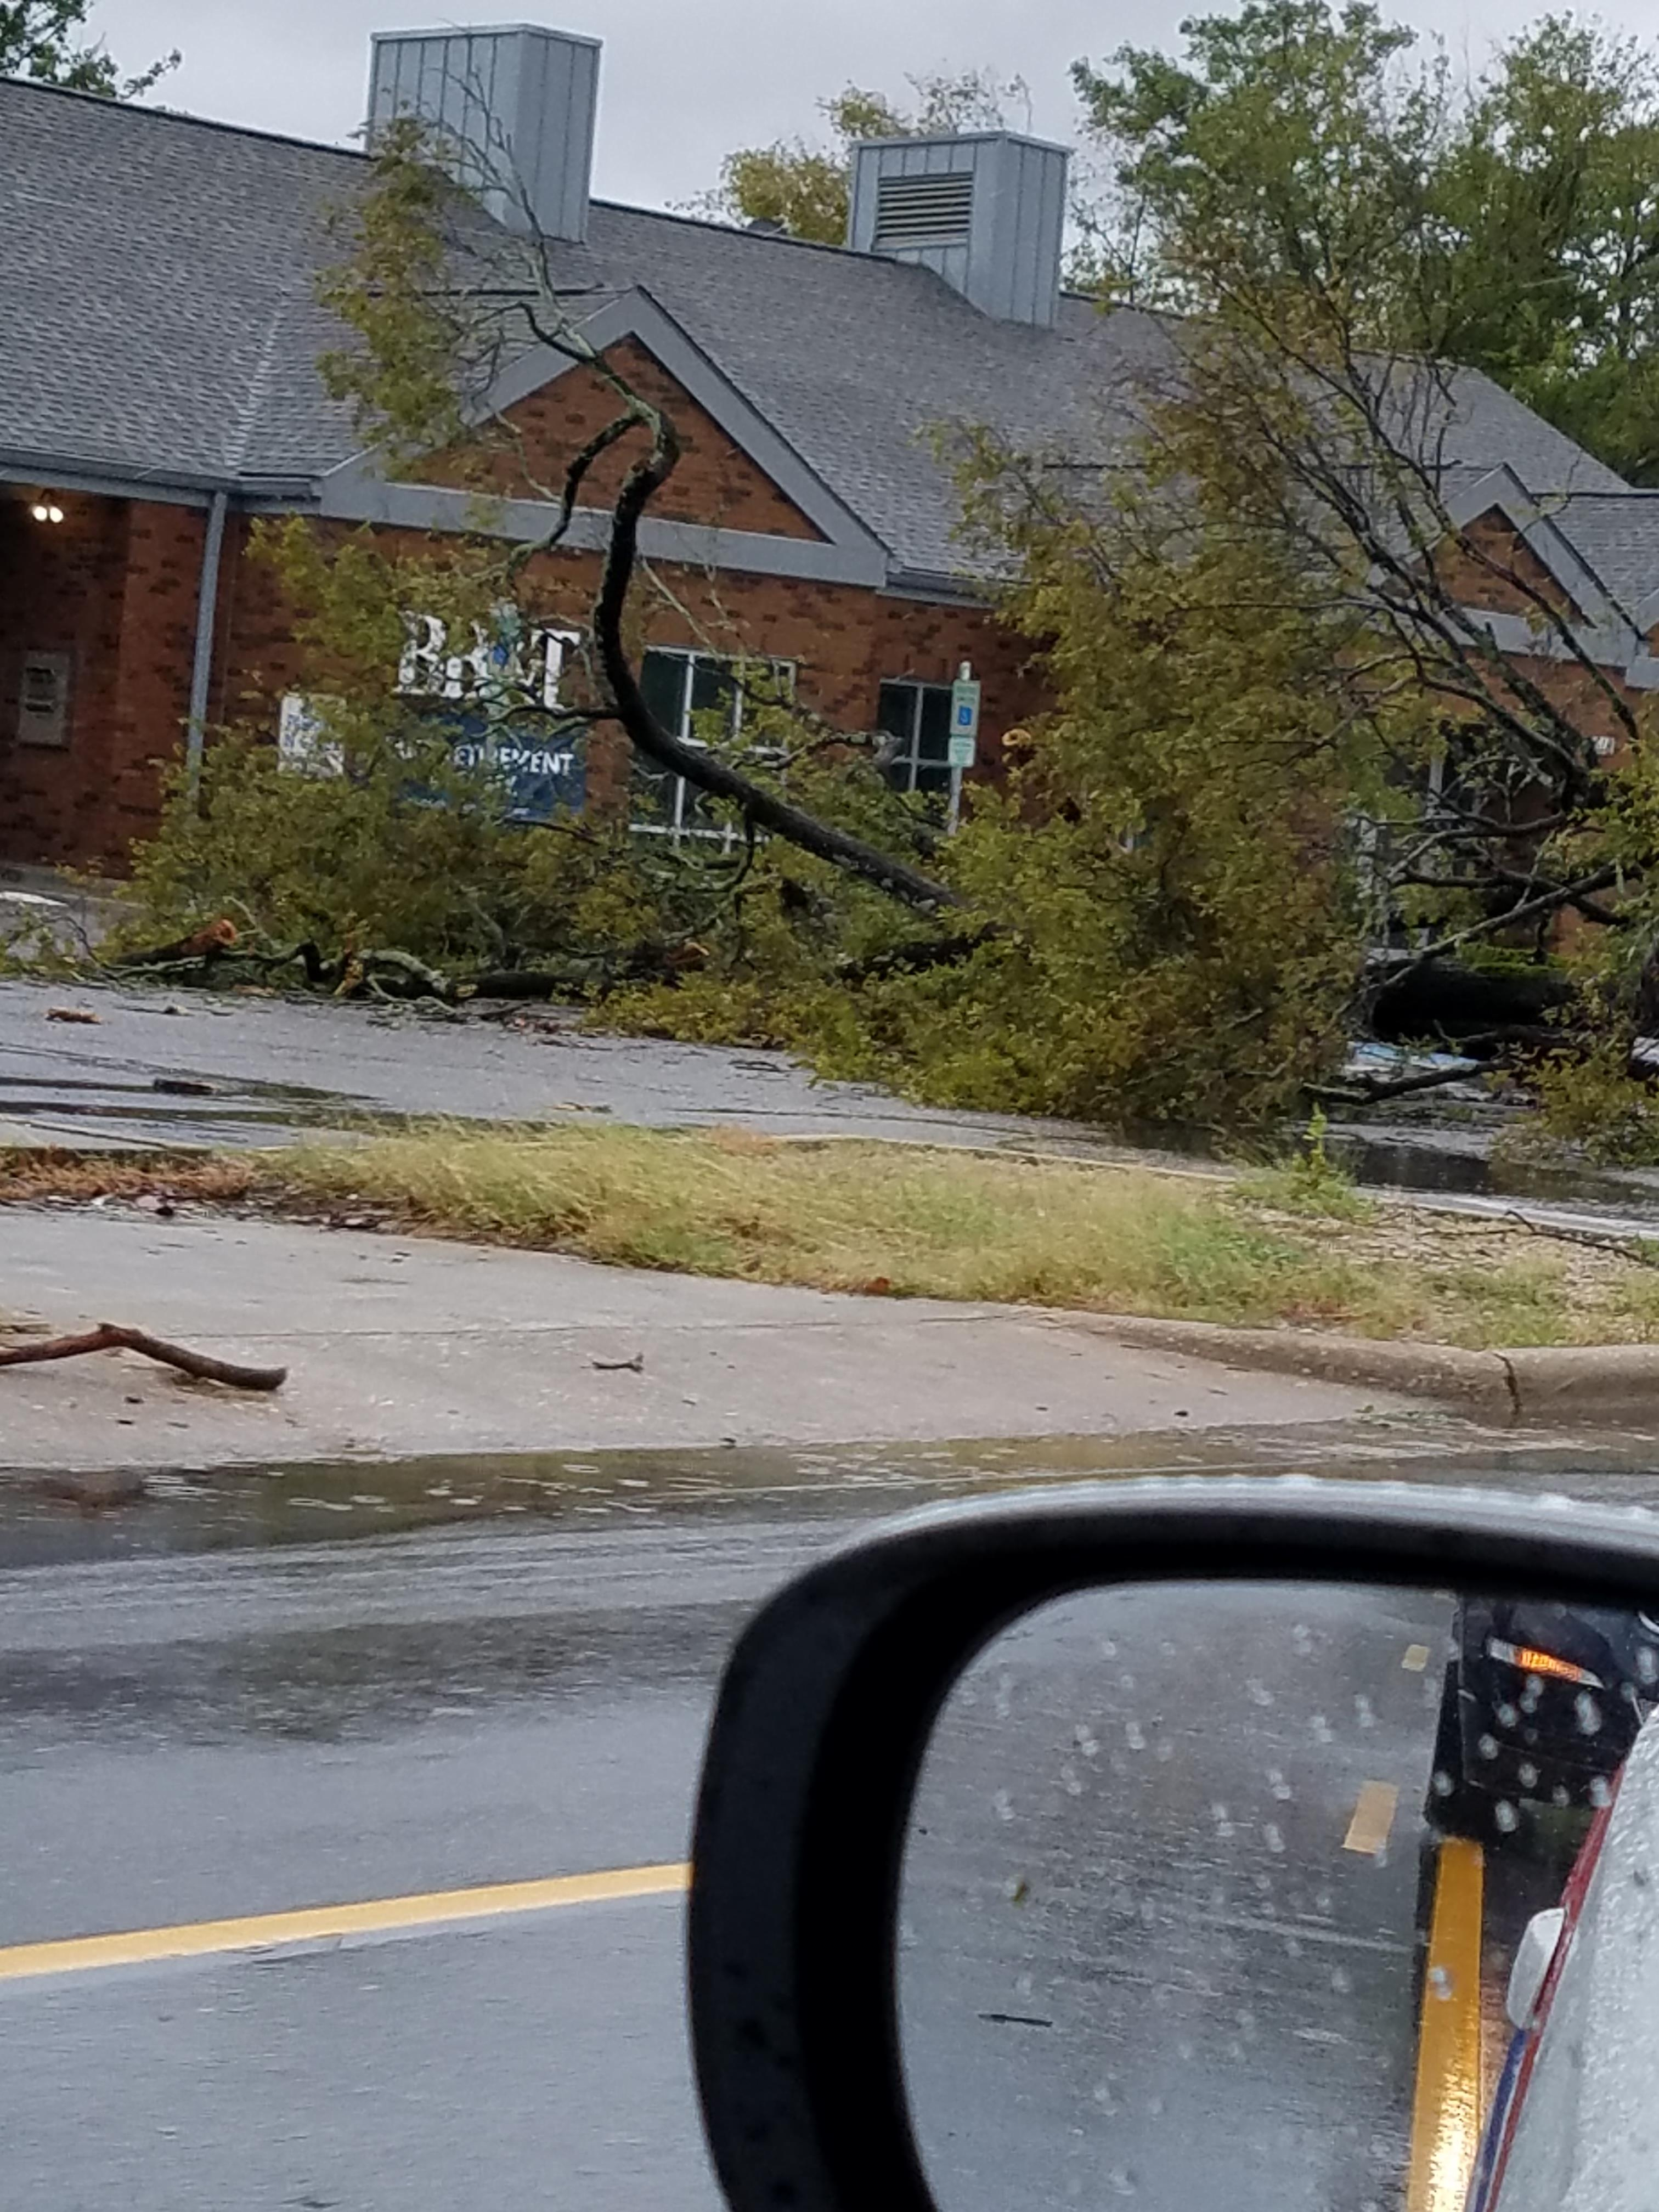 "<div class=""meta image-caption""><div class=""origin-logo origin-image wtvd""><span>WTVD</span></div><span class=""caption-text"">A large tree fell on the parking lot of the Hope Mills BB&T on North Main St. nearly striking the bank itself. (ABC11 Eyewitness - Wayne Huff)</span></div>"